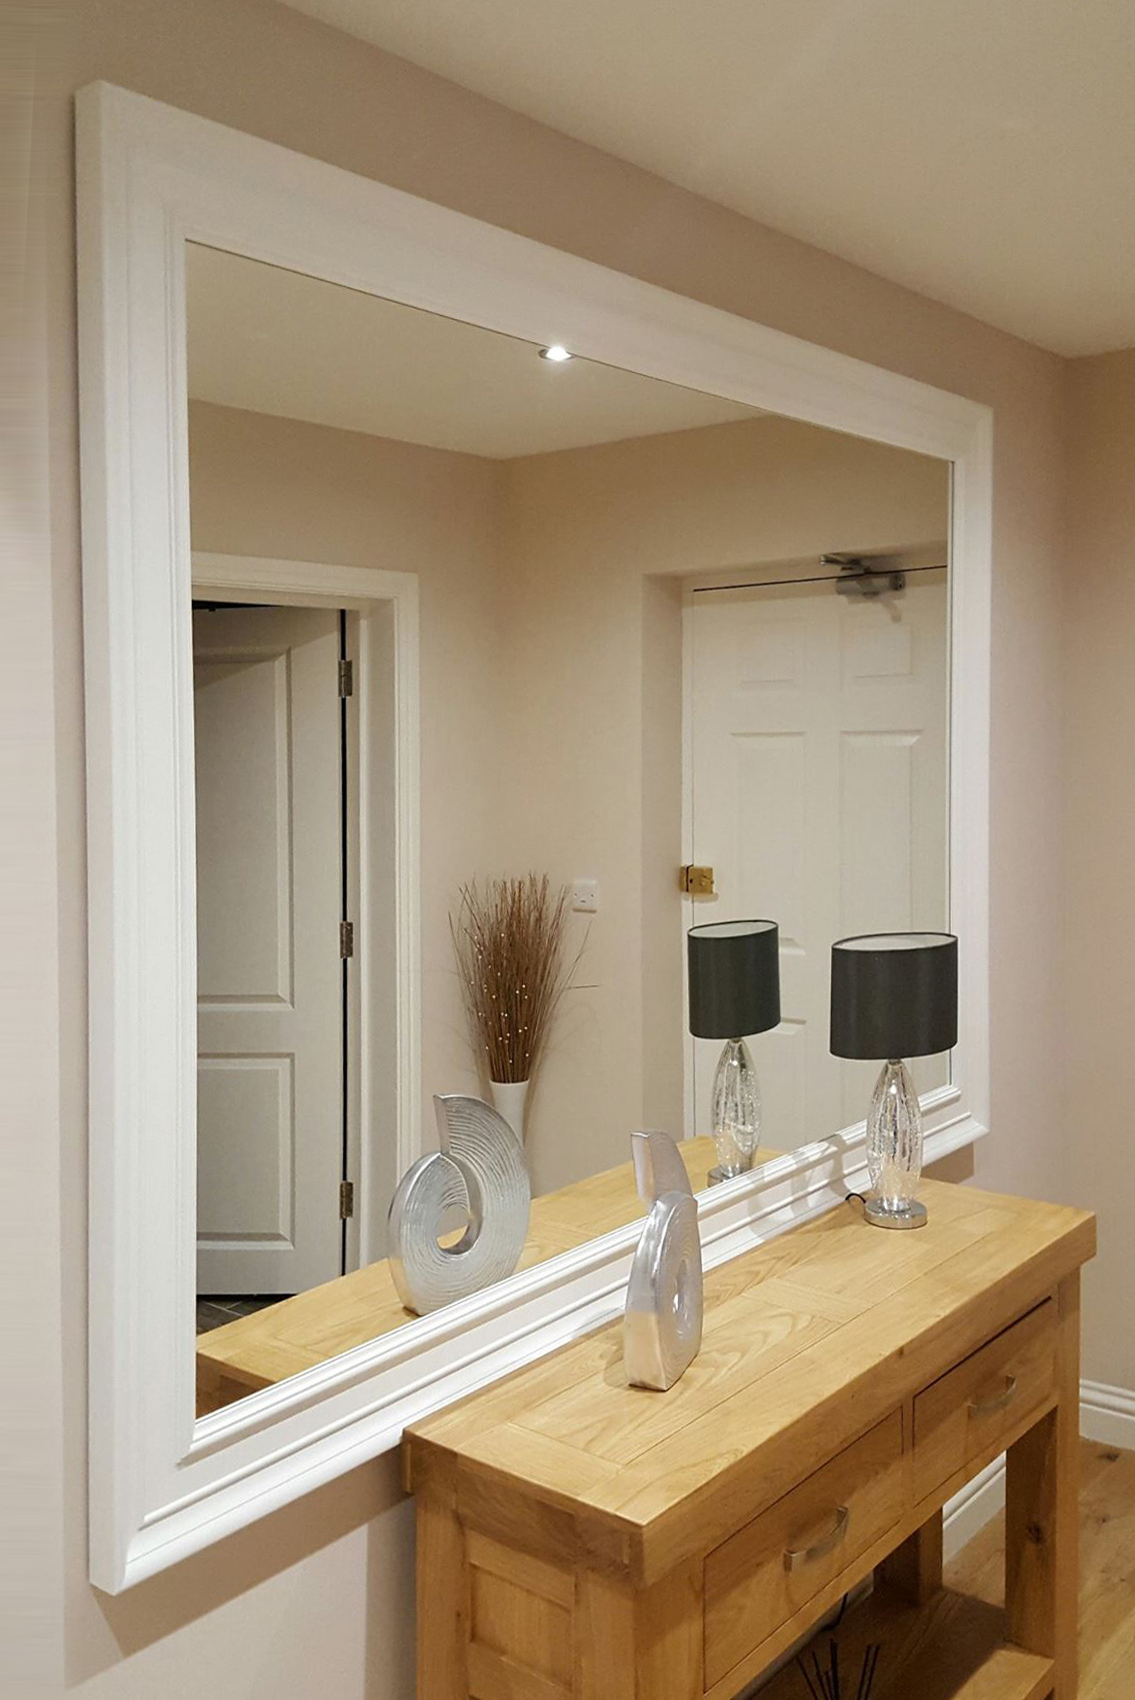 Popular Oxford Extra Large White Mirror (2 Sizes & Bespoke) Regarding Large White Framed Wall Mirrors (View 3 of 20)